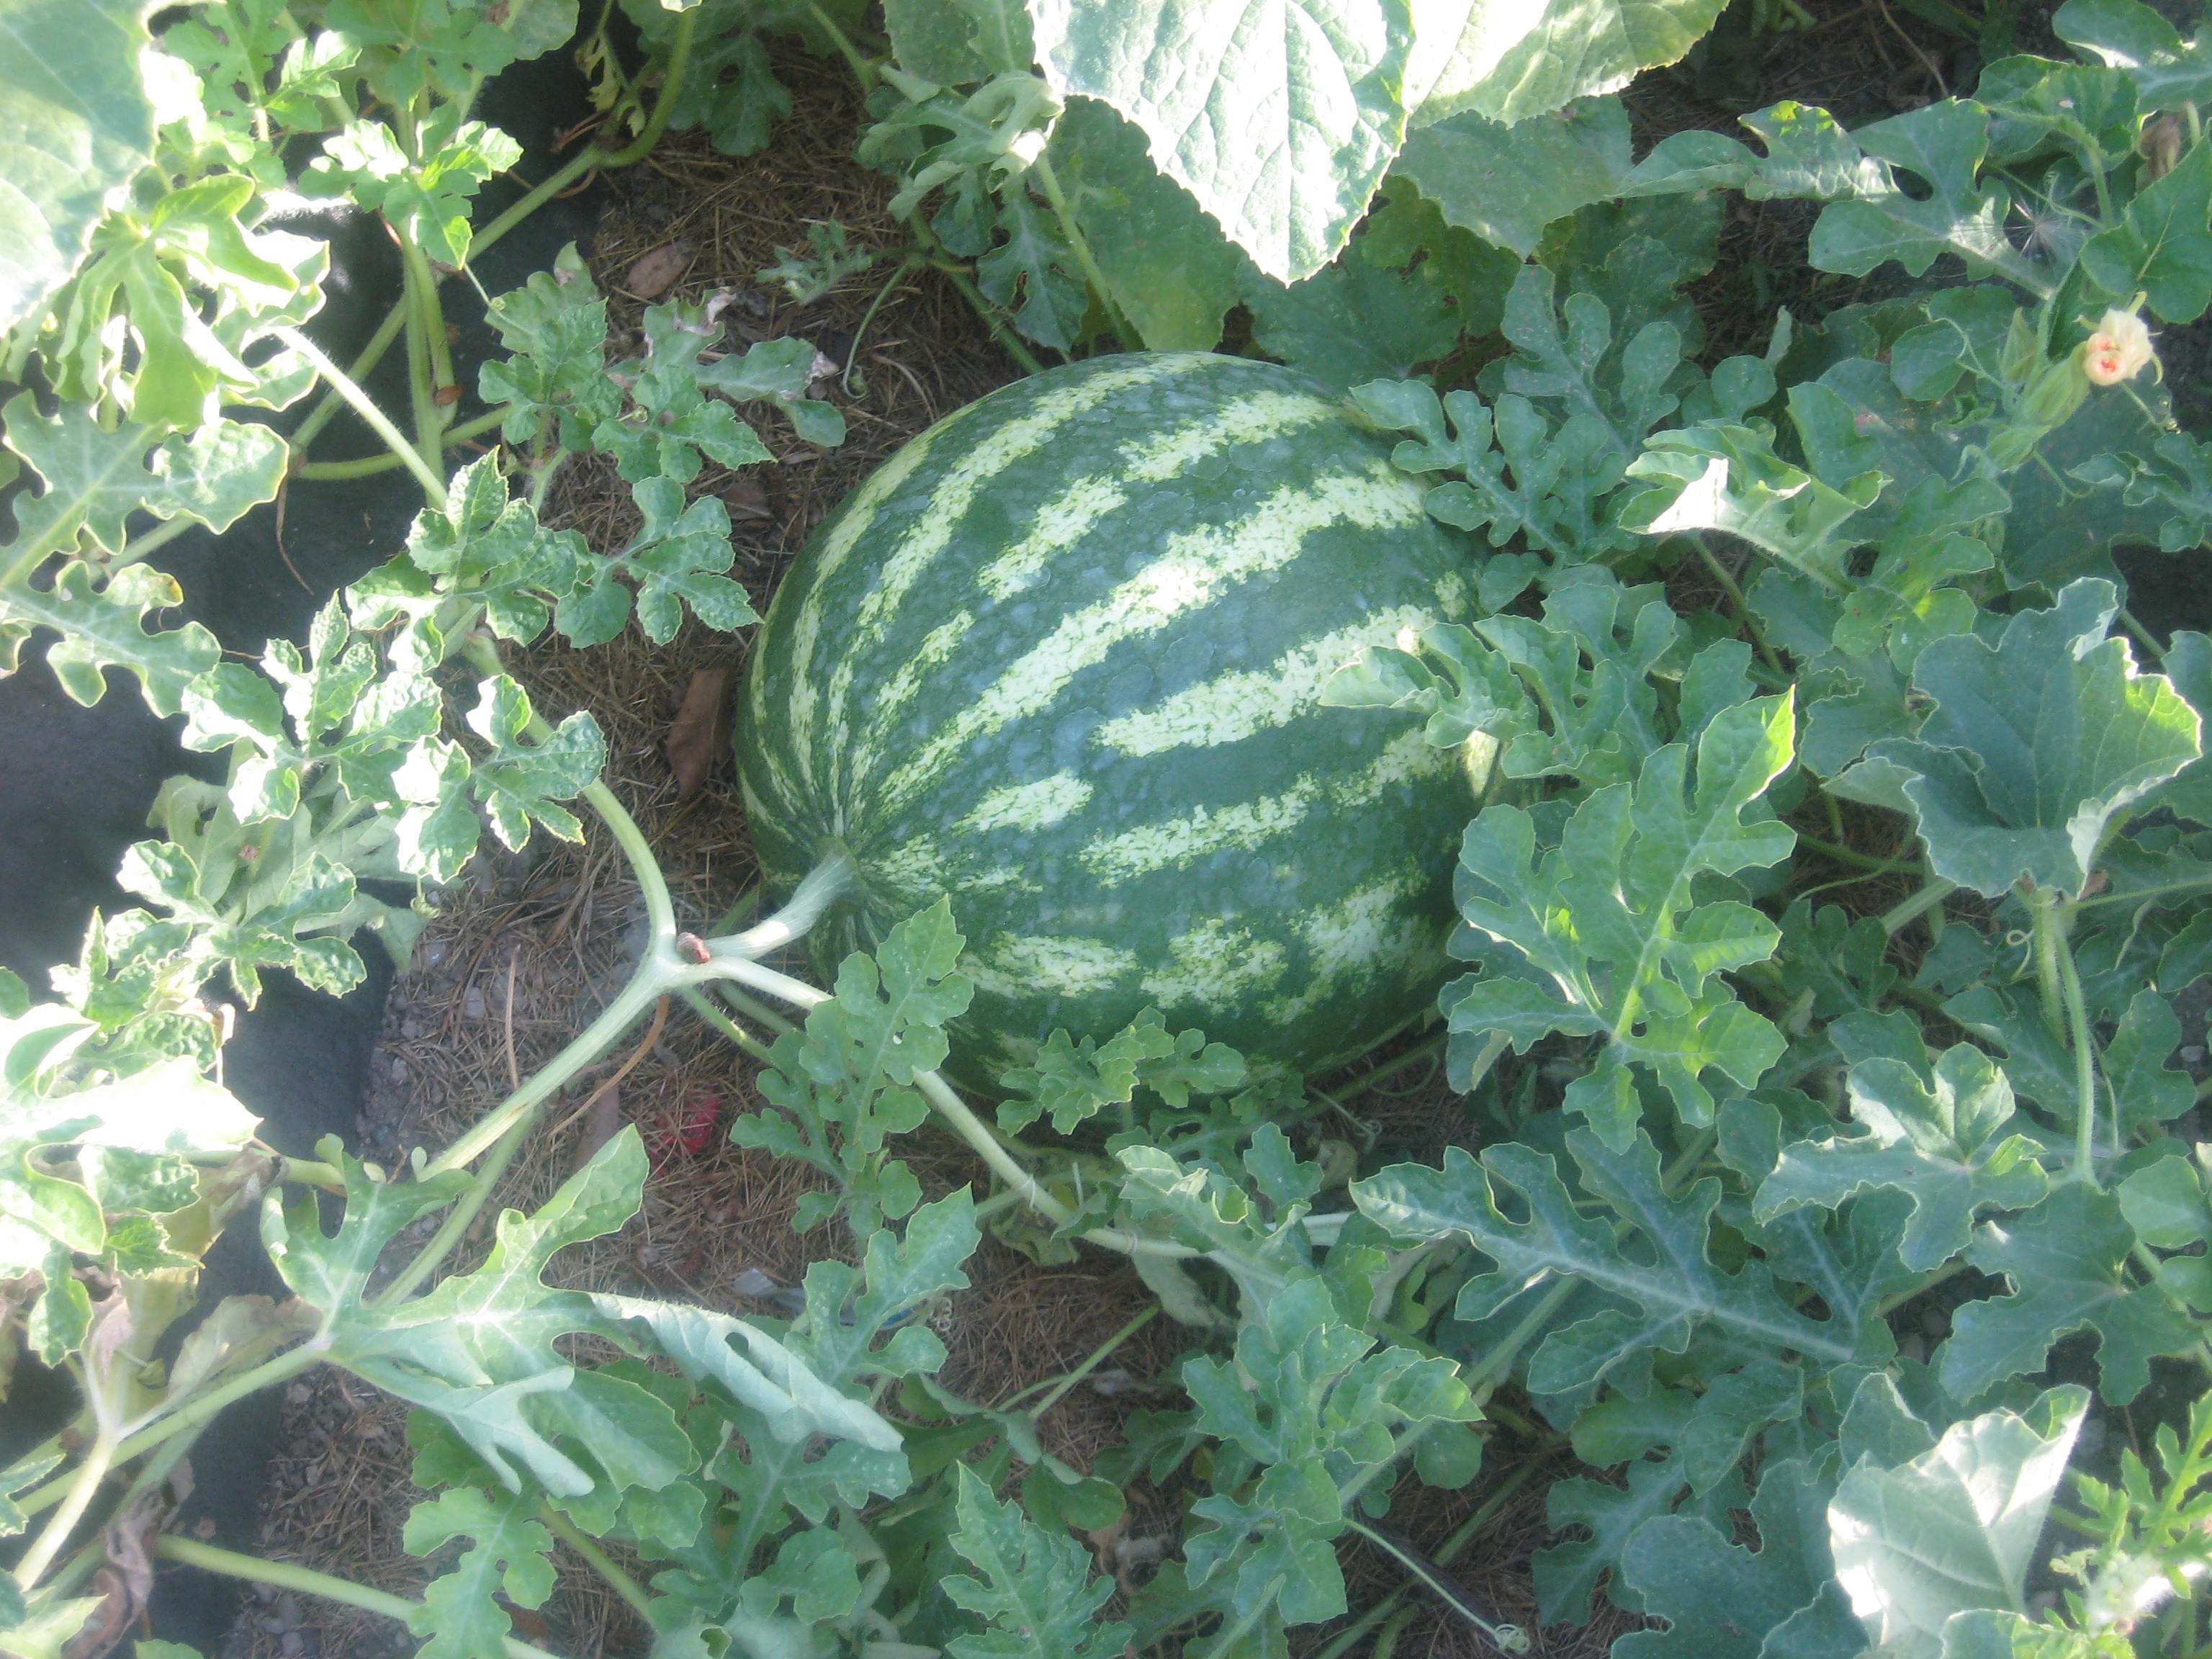 Watermelons are much harder to tell when they are ripe!